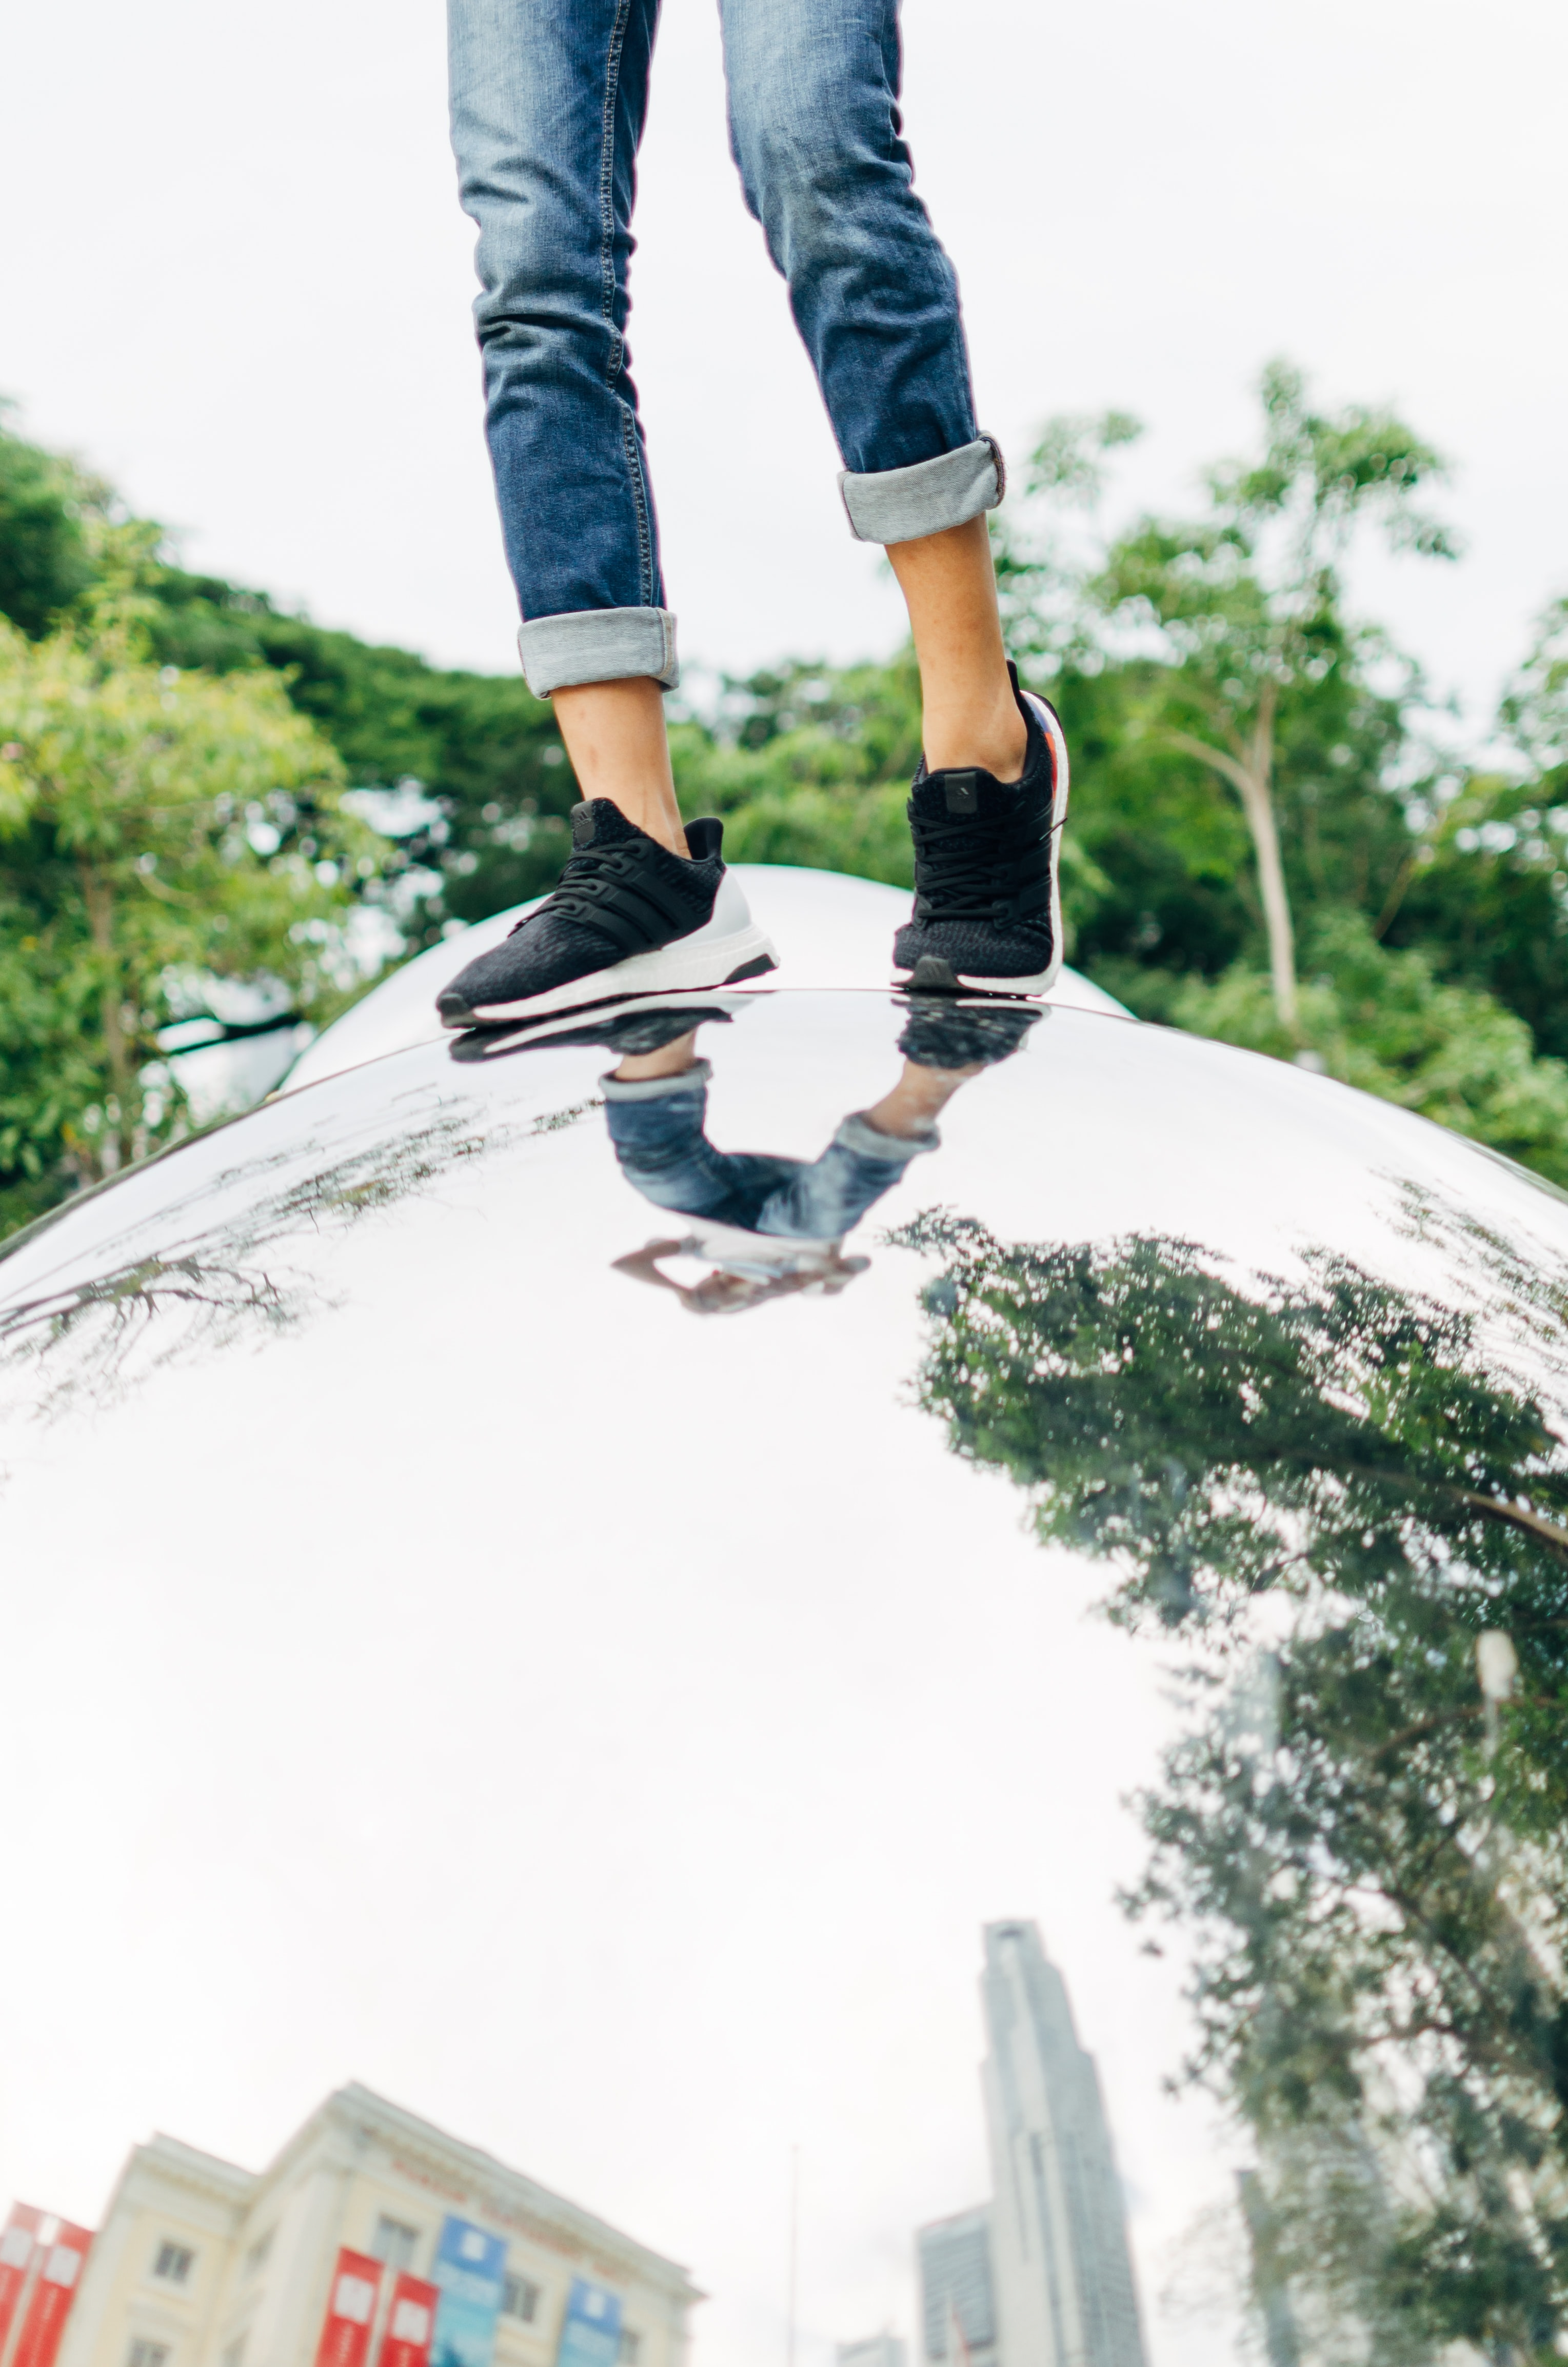 person wearing shoes and pants standing on chrome structure at daytime